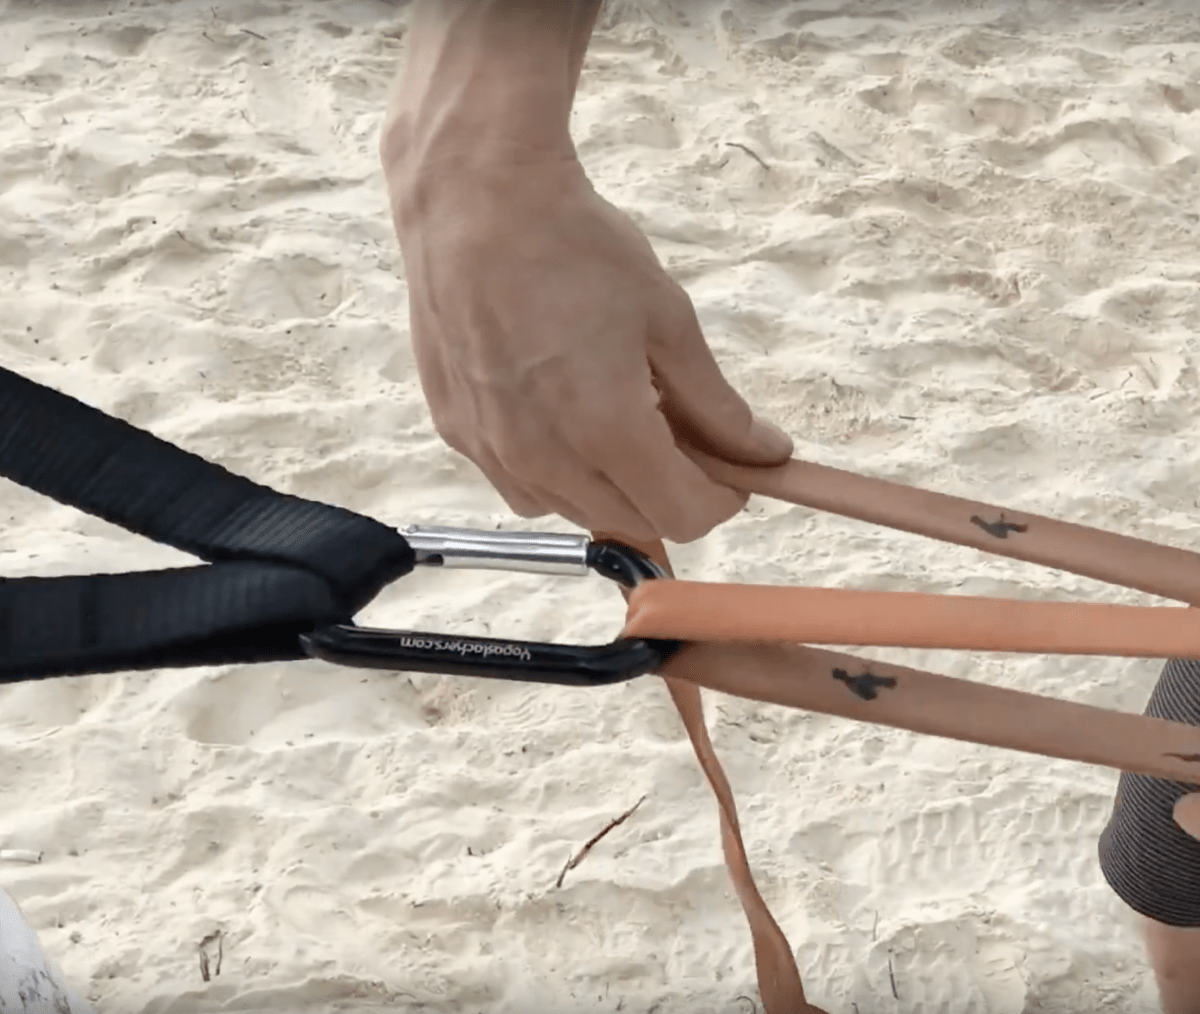 Tri-Axial Loading a Carabiner: Is it safe for slacklining?